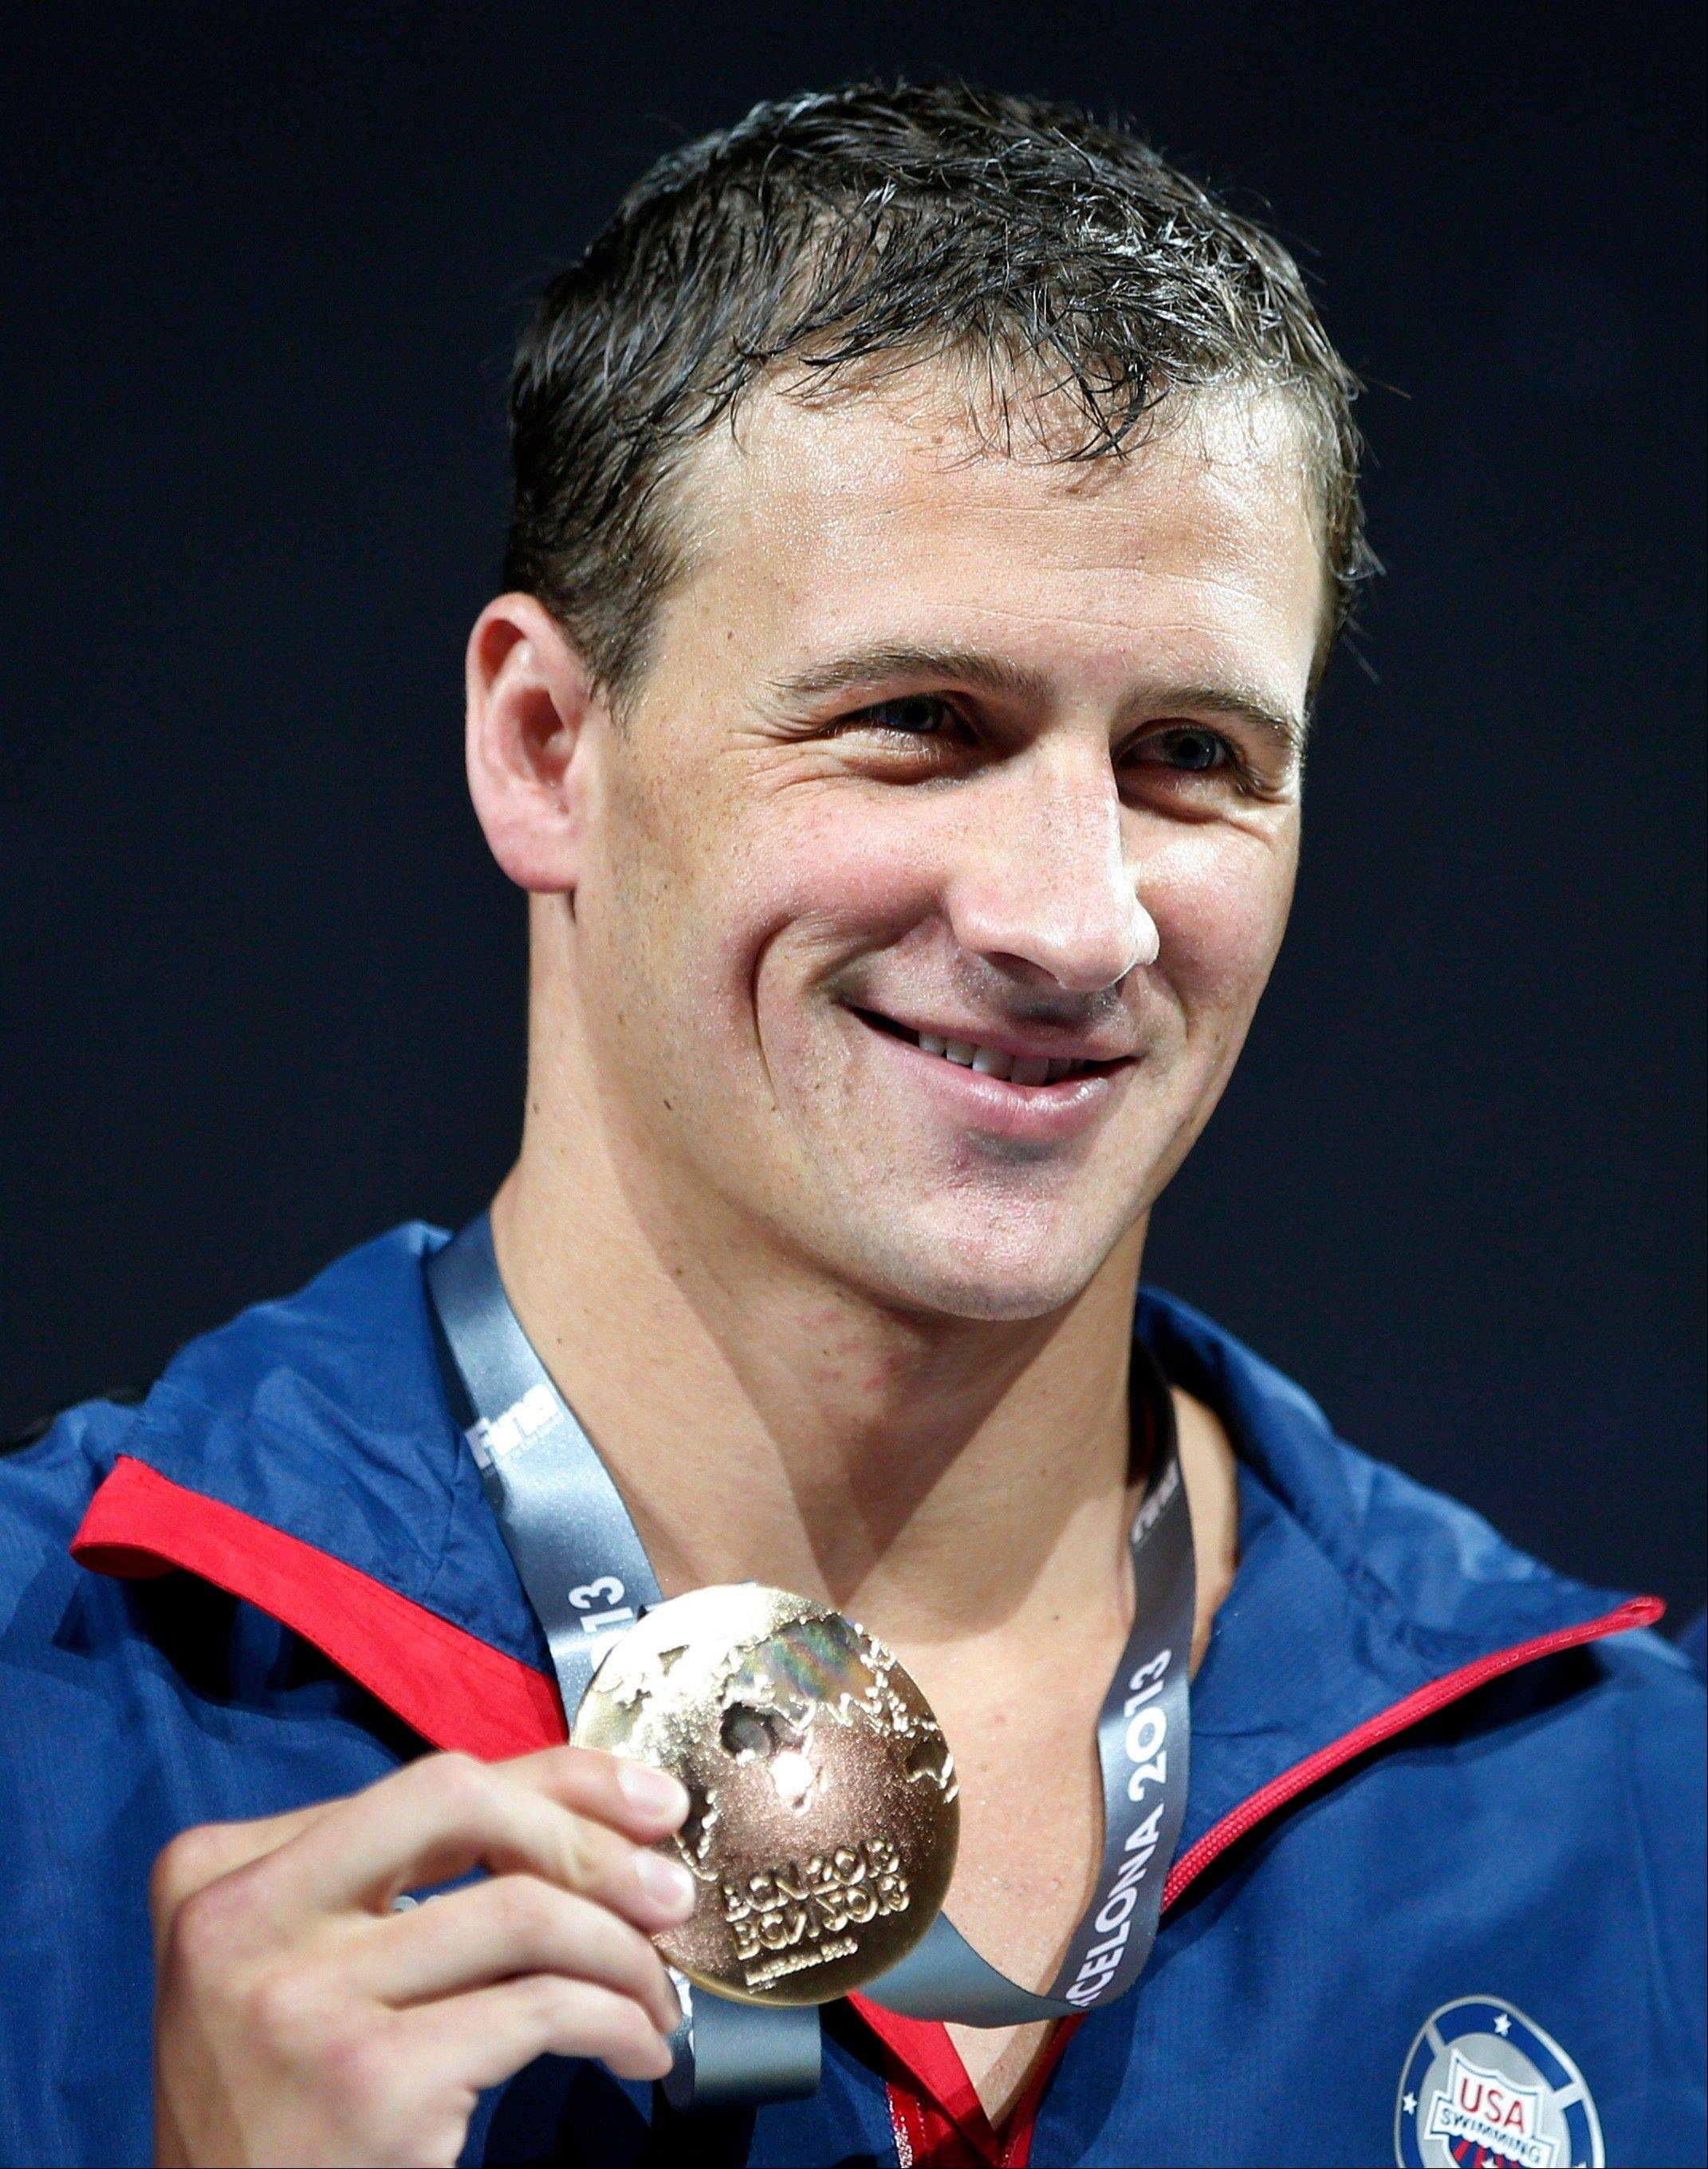 Ryan Lochte of the United States smiles as he holds the gold medal he won in the Men's 200m individual medley final at the FINA Swimming World Championships in Barcelona, Spain, Thursday, Aug. 1, 2013.